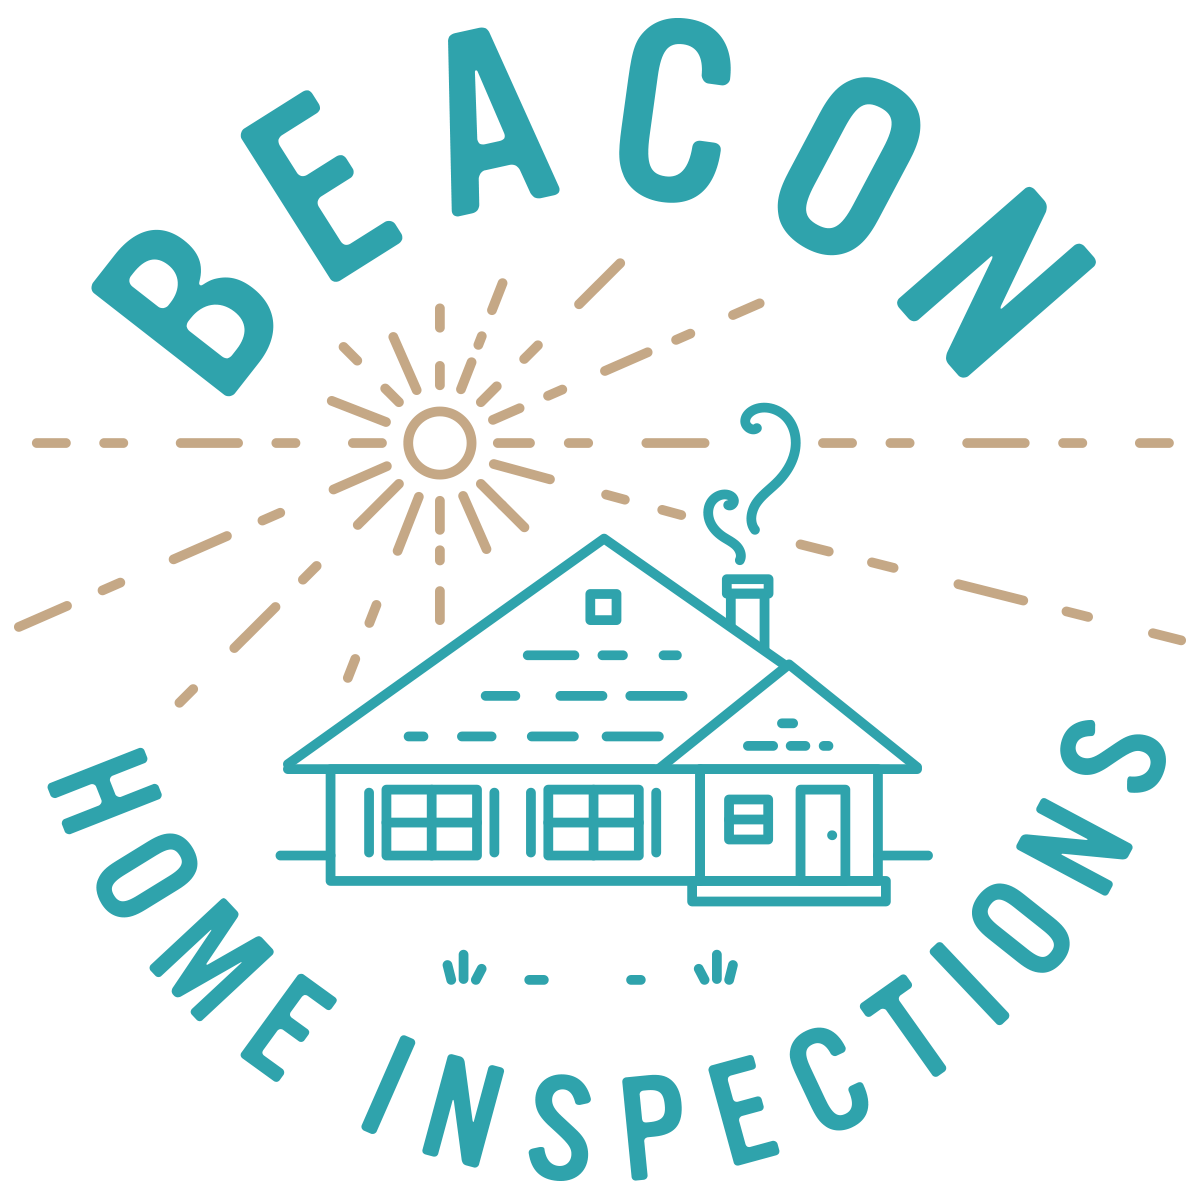 Common Problems Found When Inspecting Homes — BEACON HOME INSPECTIONS